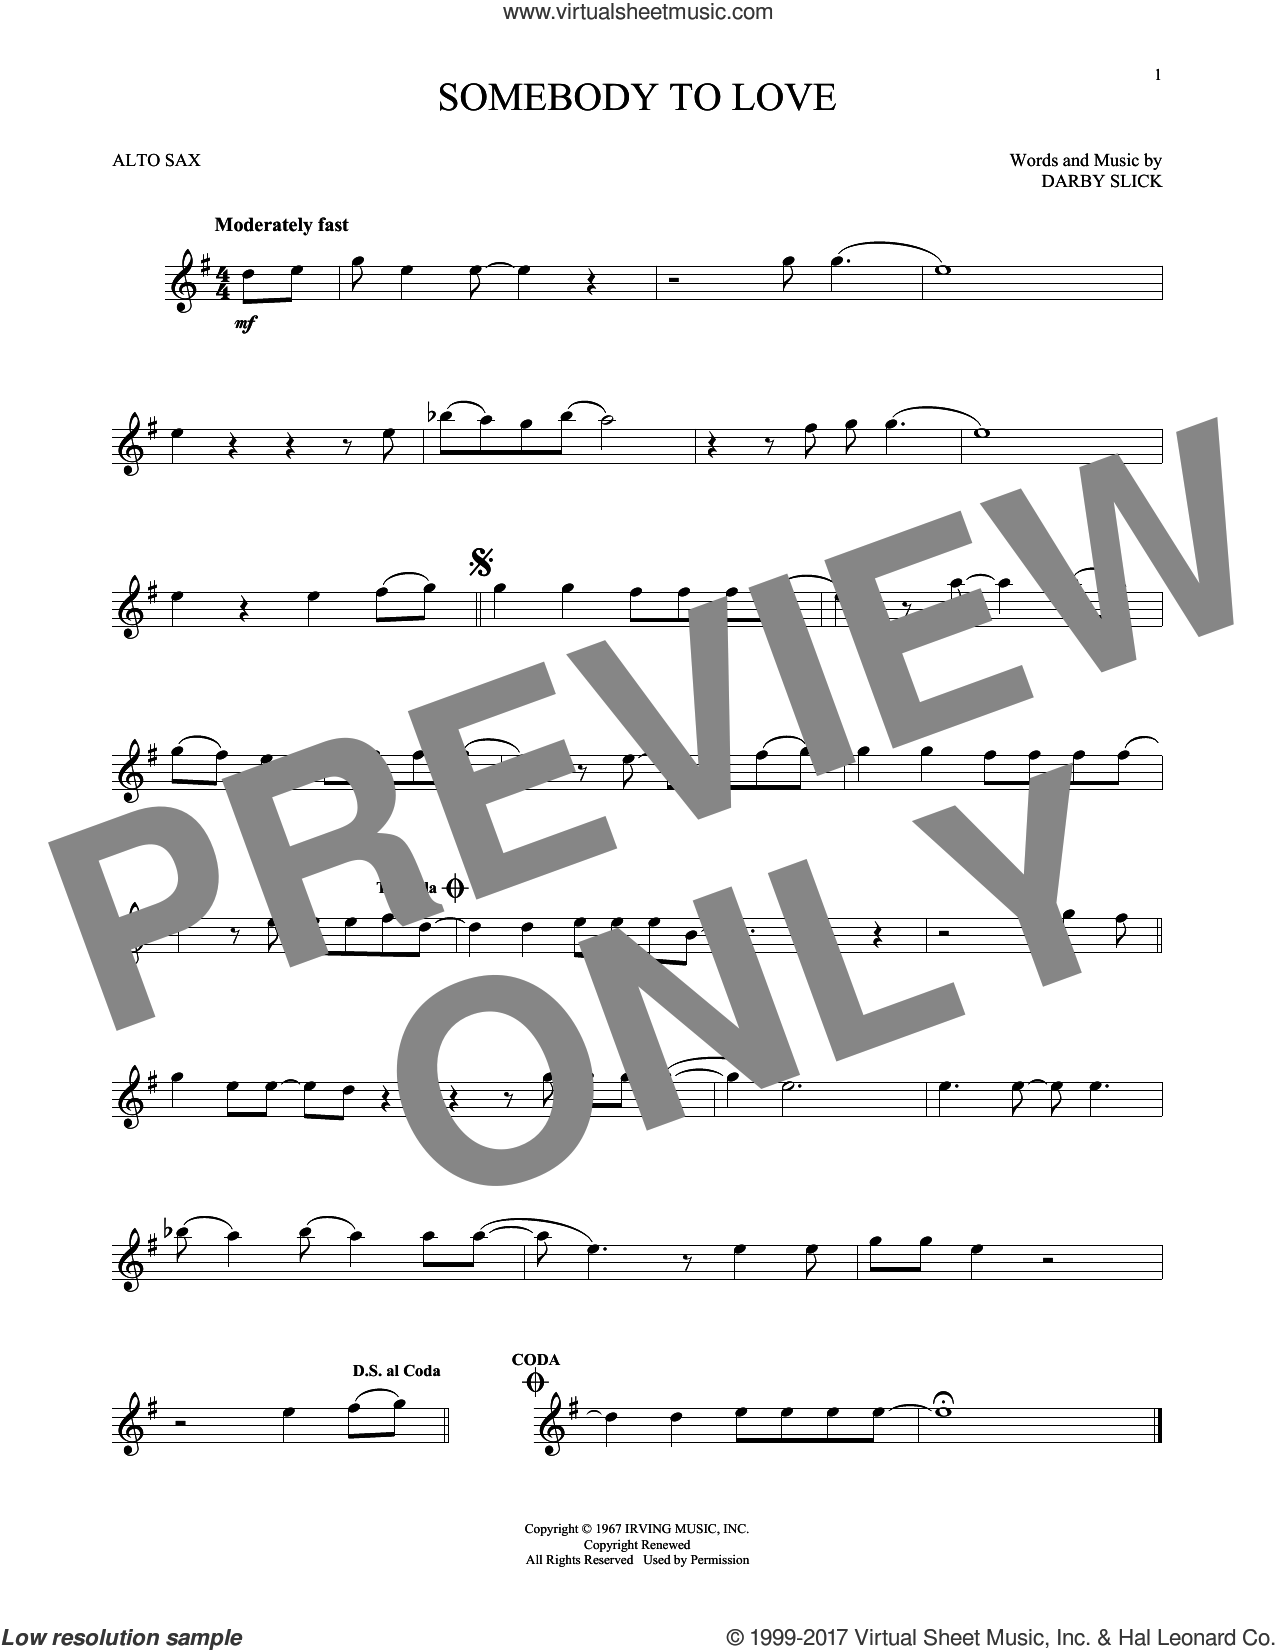 Somebody To Love sheet music for alto saxophone solo by Jefferson Airplane and Darby Slick, intermediate skill level